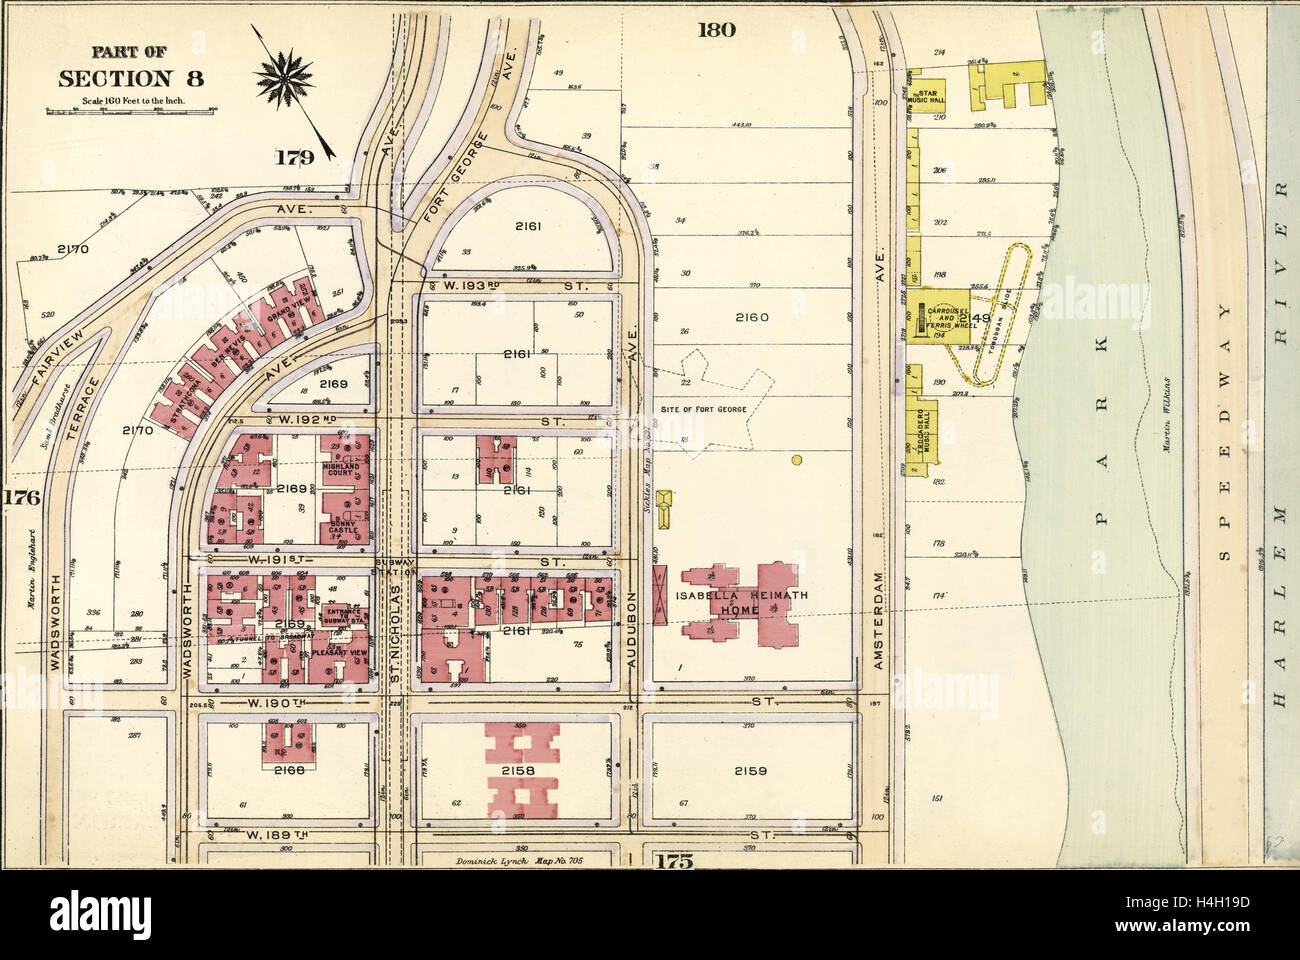 Plate 177: Bounded by Fairview Avenue, Isabella Heimath Home, Amsterdam Avenue Harlem River,W. 189th Street, W. - Stock Image